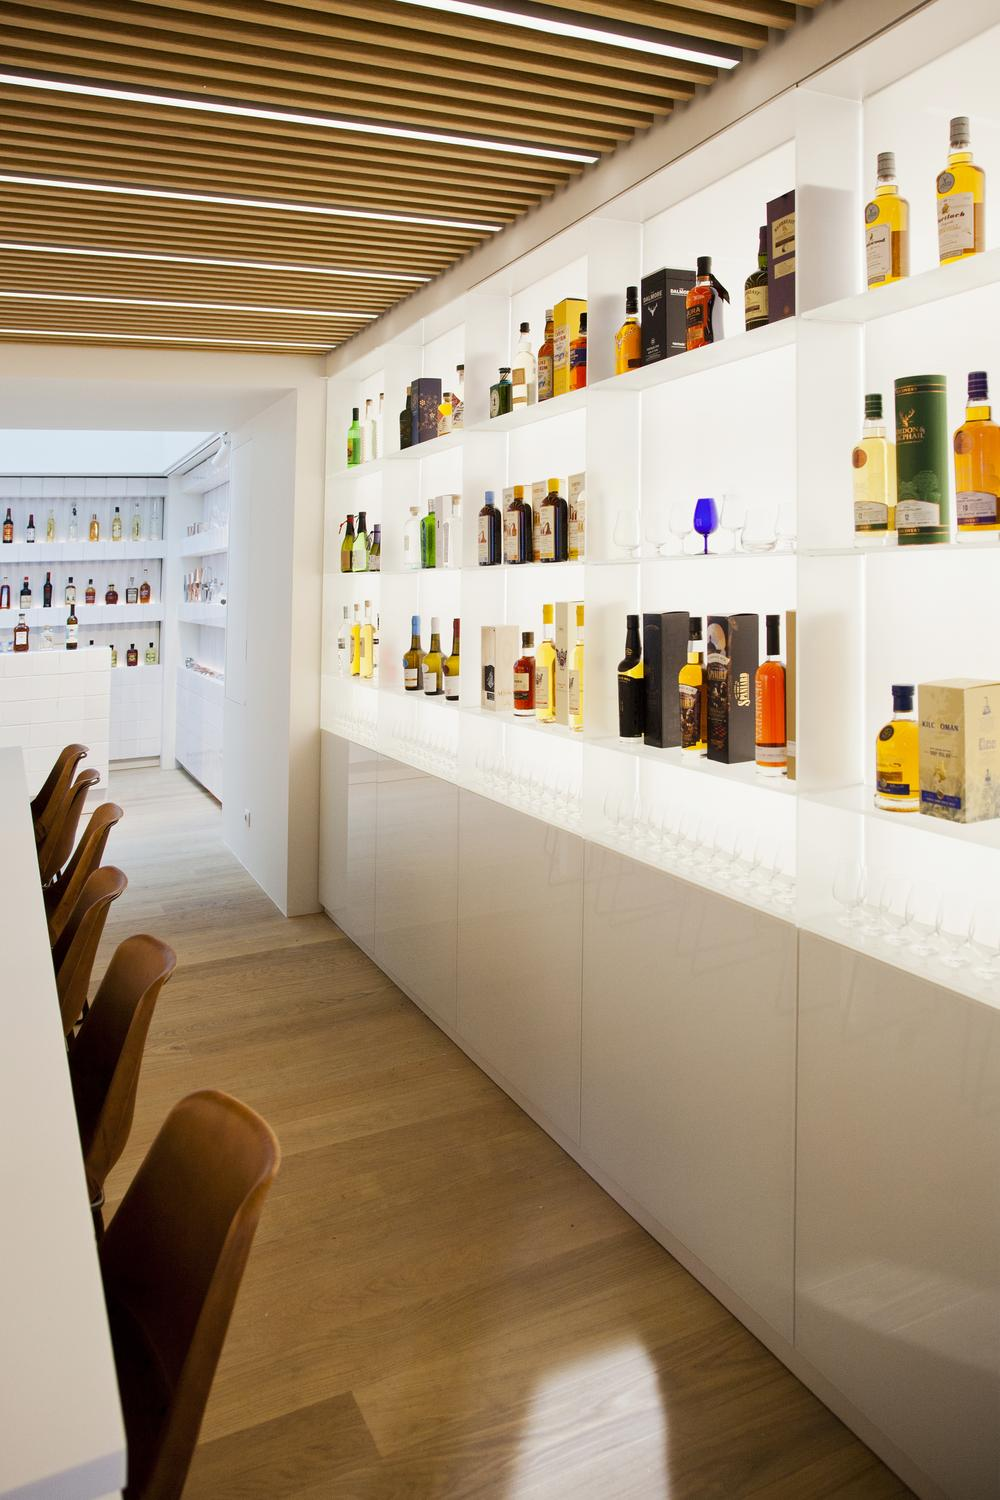 MAISON-DU-WHISKY-AGENCEMENT-TCE-ATELIERS-NORMAND-MEDIA6- DECORATION-MAGASIN-SHOP-FITTINGS